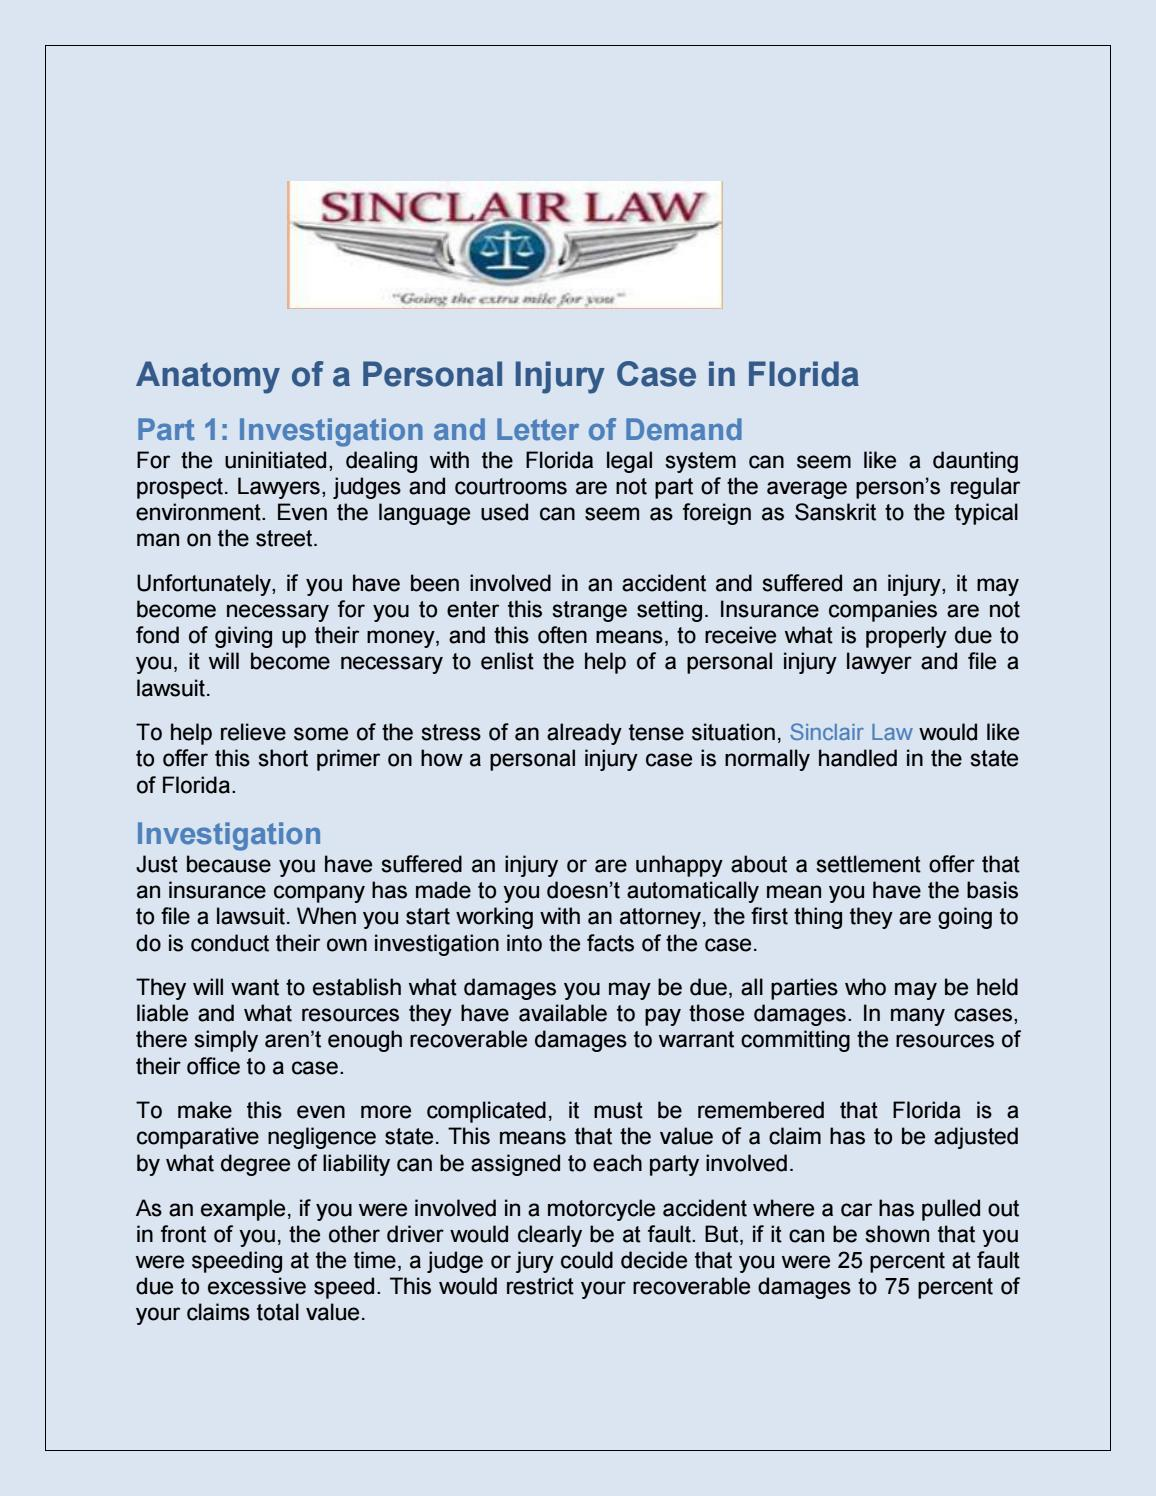 Anatomy of a personal injury case in florida by sinclairlaw080 - issuu